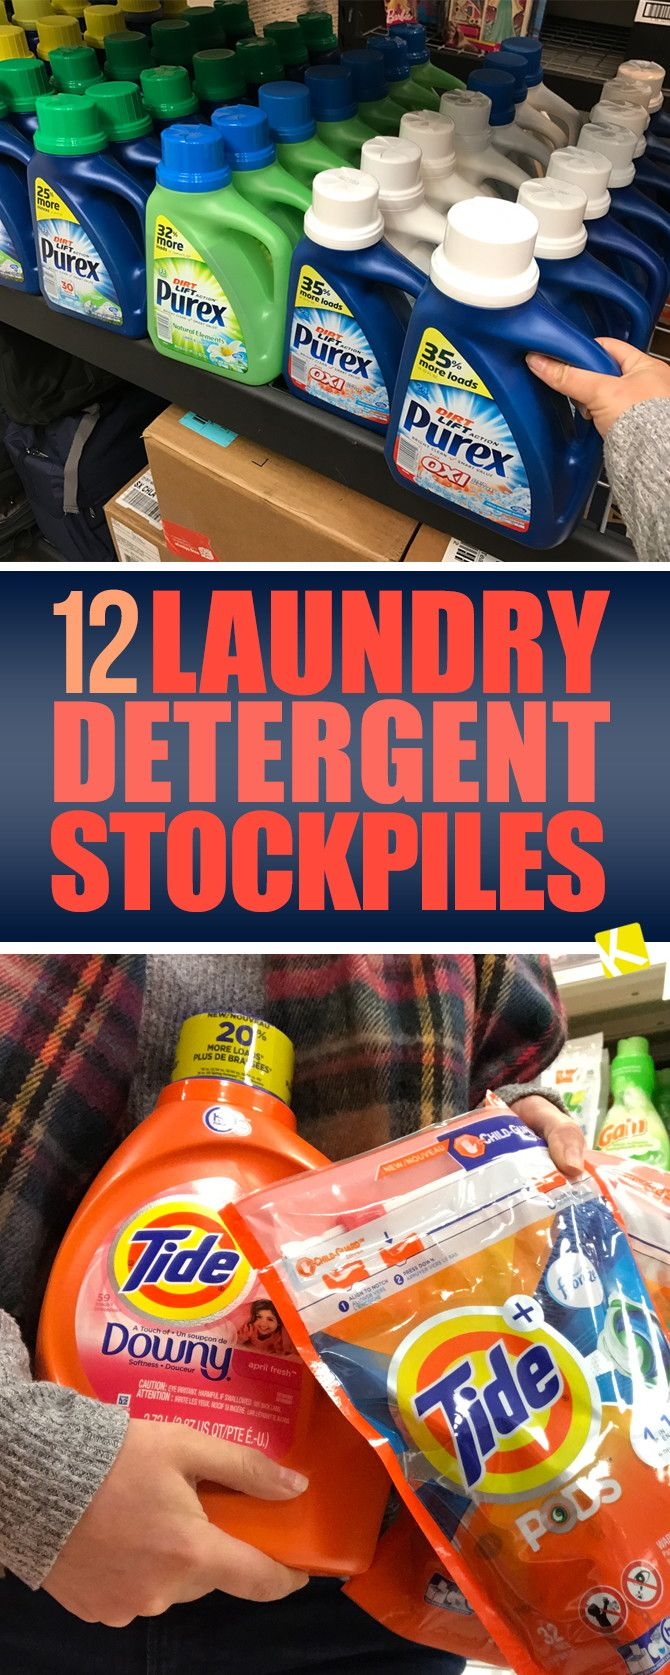 12 Laundry Detergent Stockpiles That Will Make You Envious